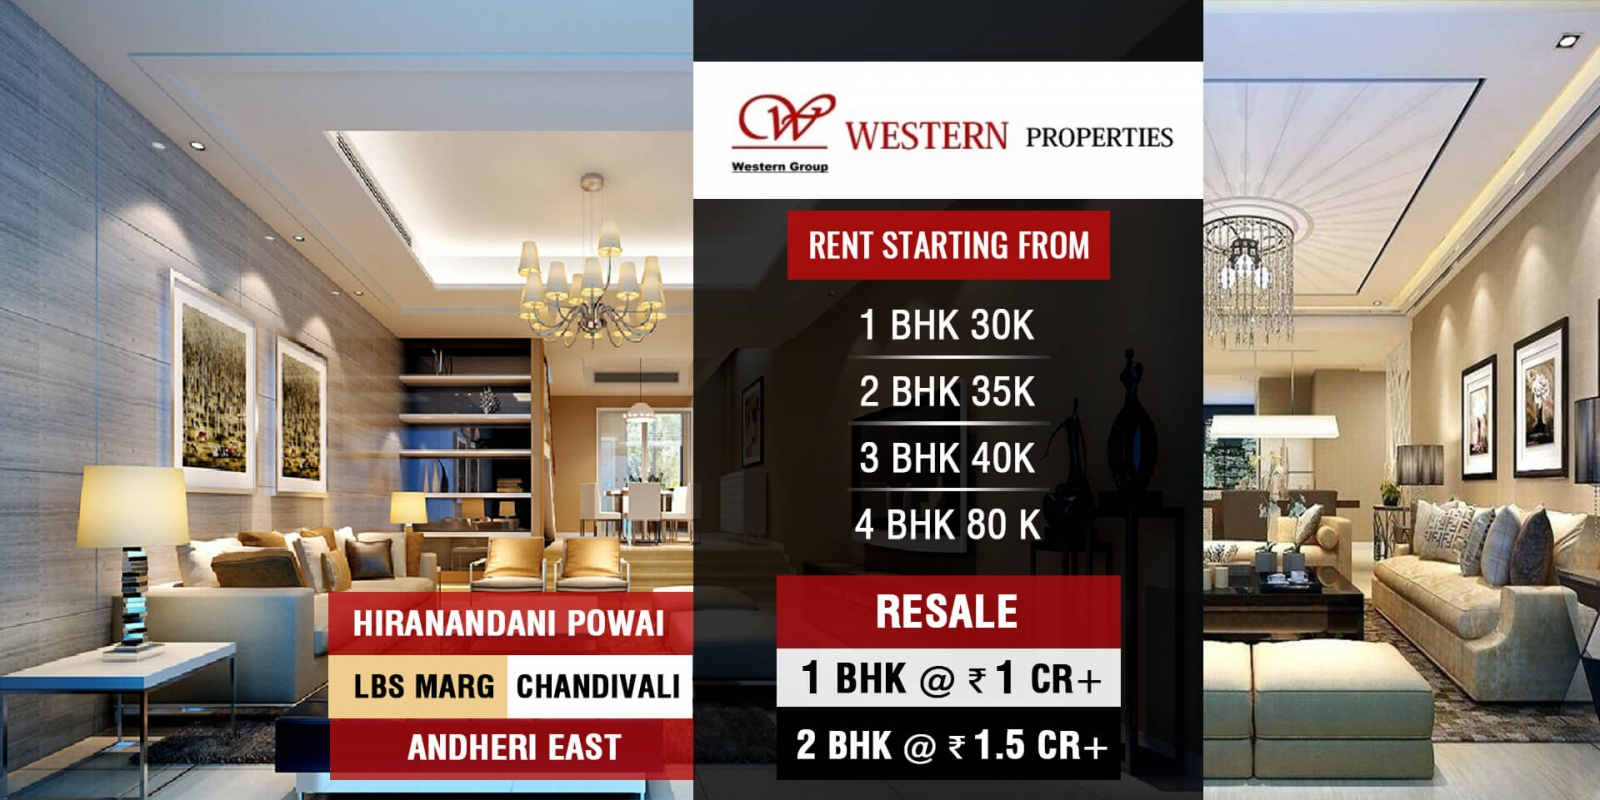 residential rent in hiranandani powai